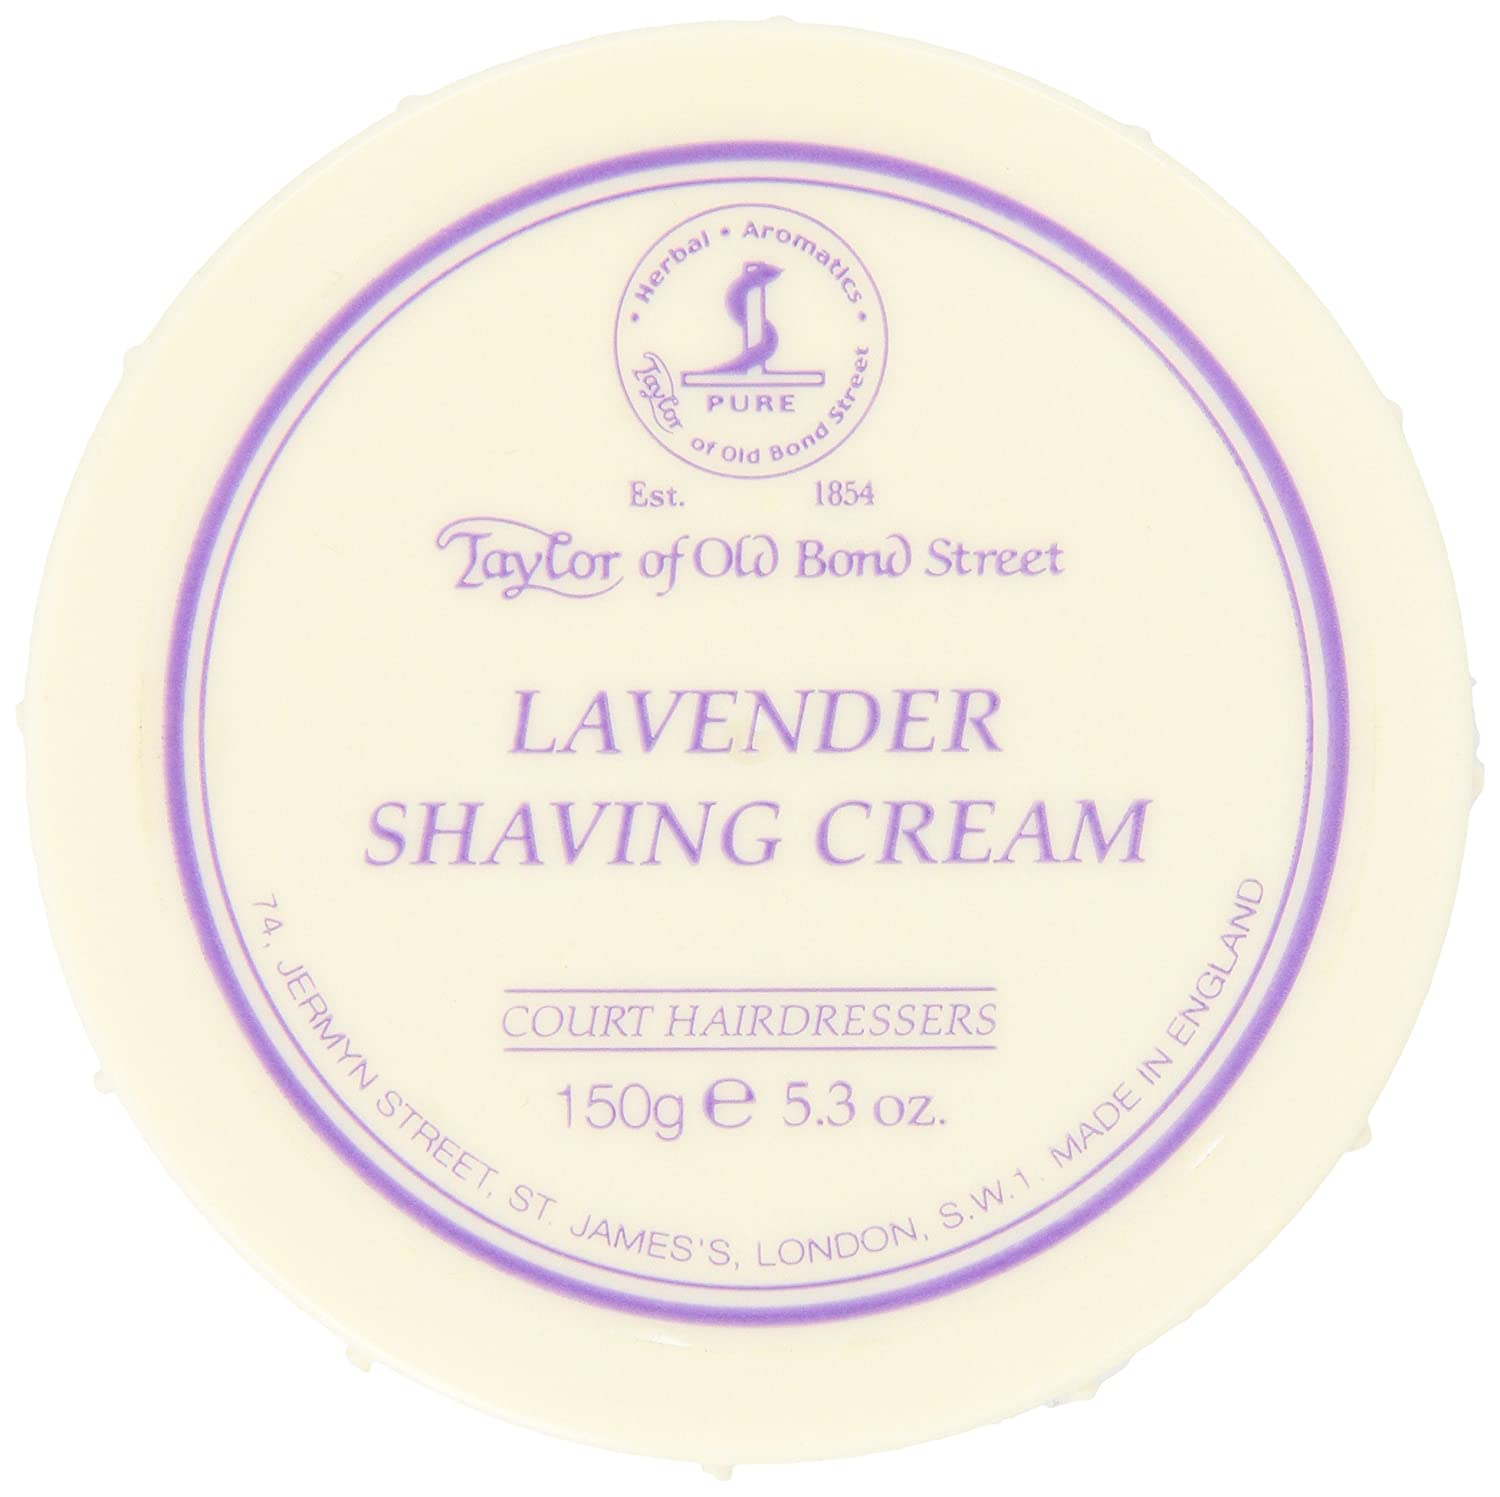 Taylor of Old Bond Street Lavender Shaving Cream Bowl, 5.3-Ounce 01003